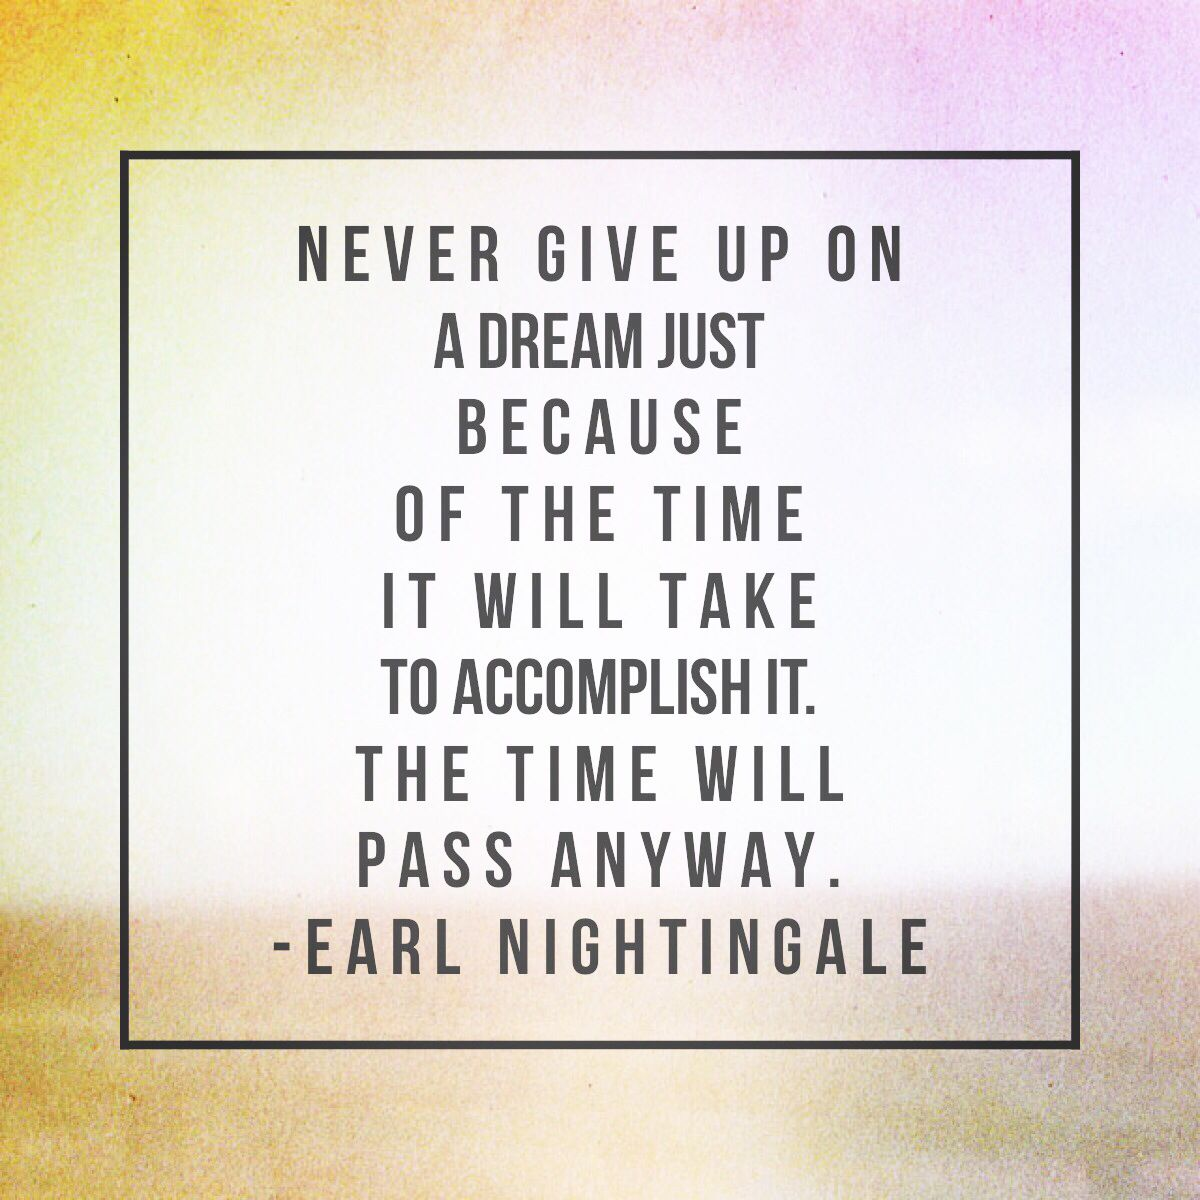 - Earl Nightingale